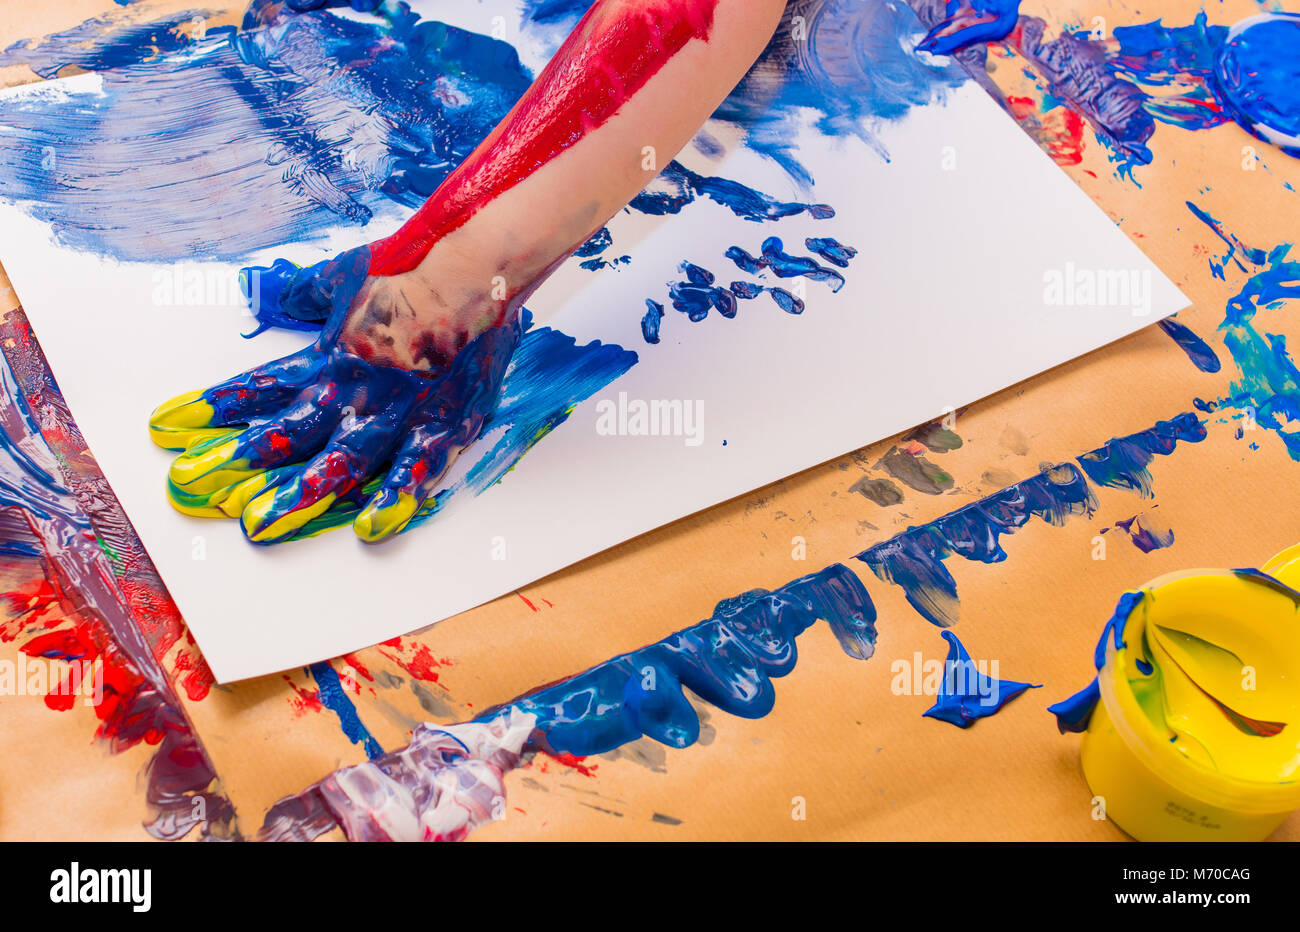 Child hand painted in colorful paints. Education, school, creativity and painting concept. Soft focus an blurry - Stock Image